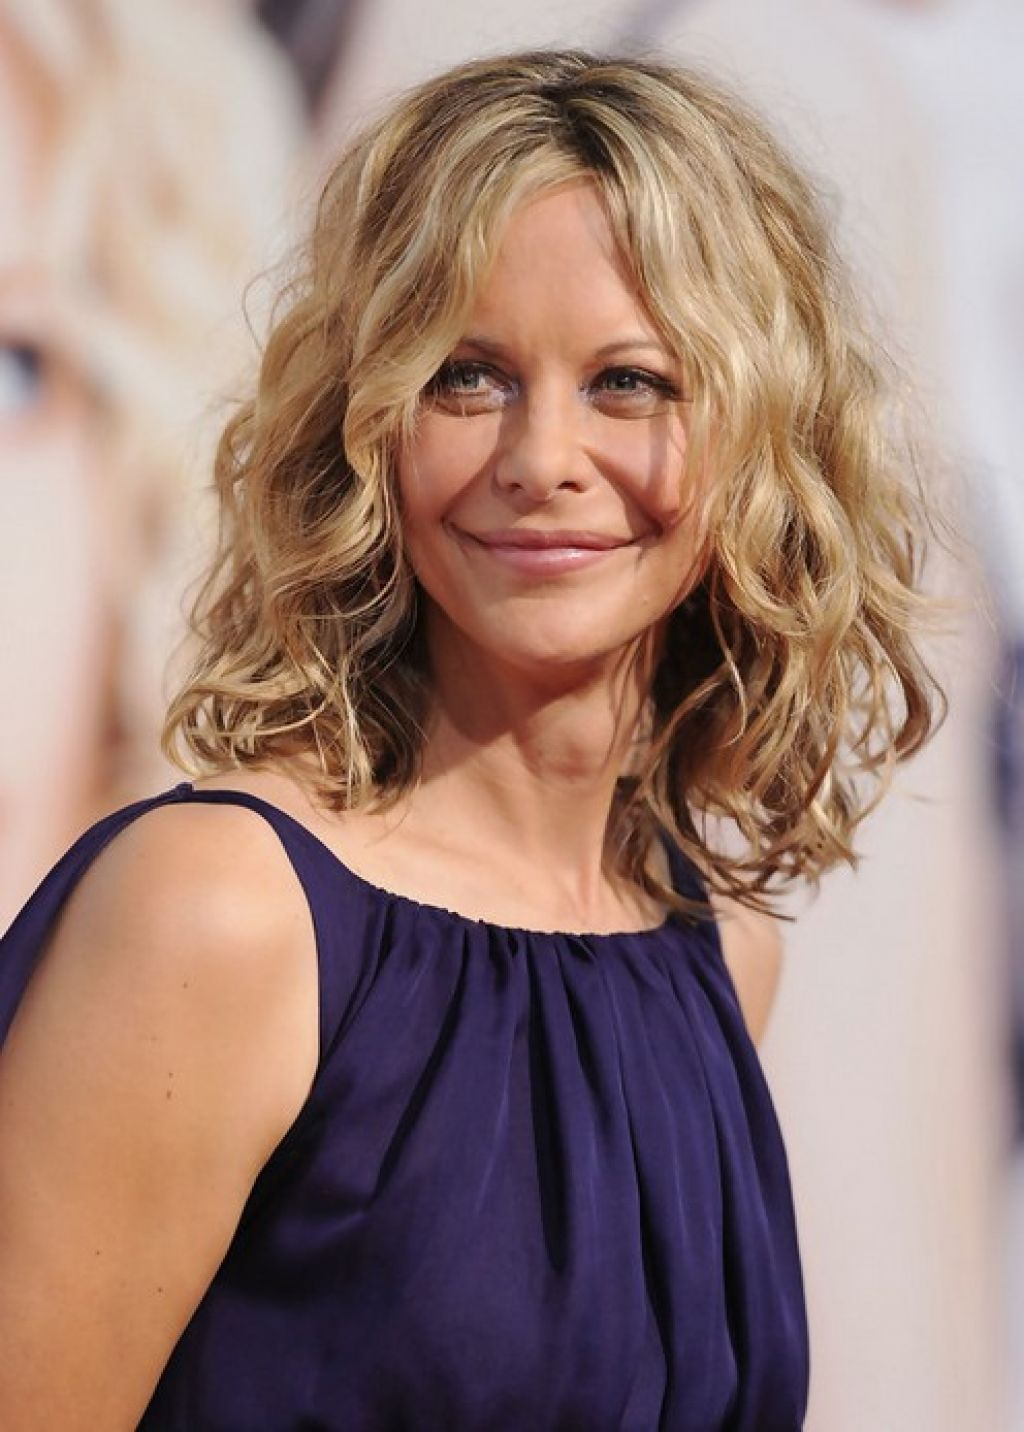 Long Hair Color Trends For Older Women With Images Medium Length Hair Styles Curly Hair Styles Easy Long Hair Color